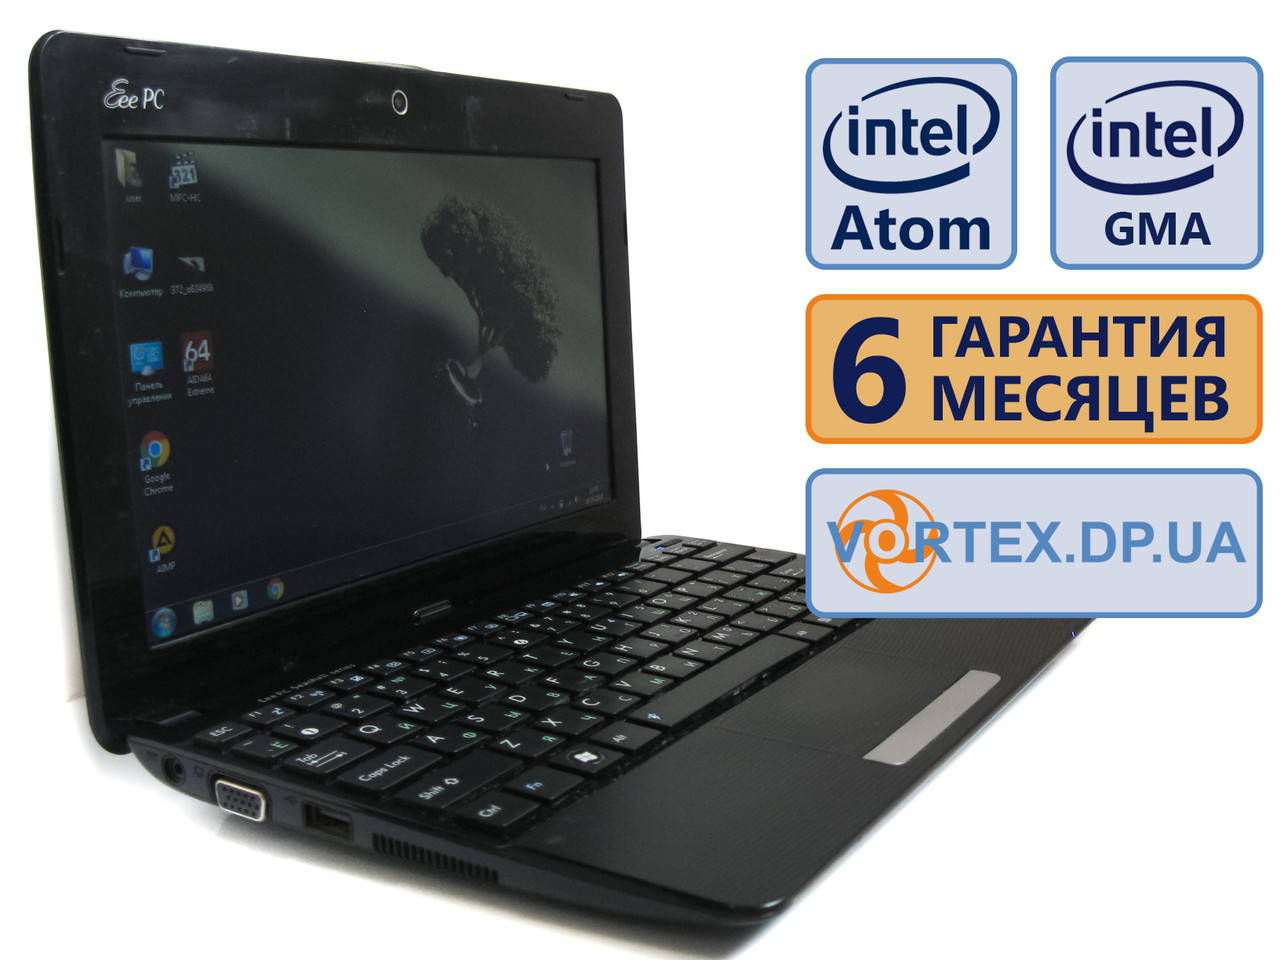 Нетбук Asus Eee PC 1011 10.1 (1024x600) / Intel Atom N570 (2x1.66Ghz)